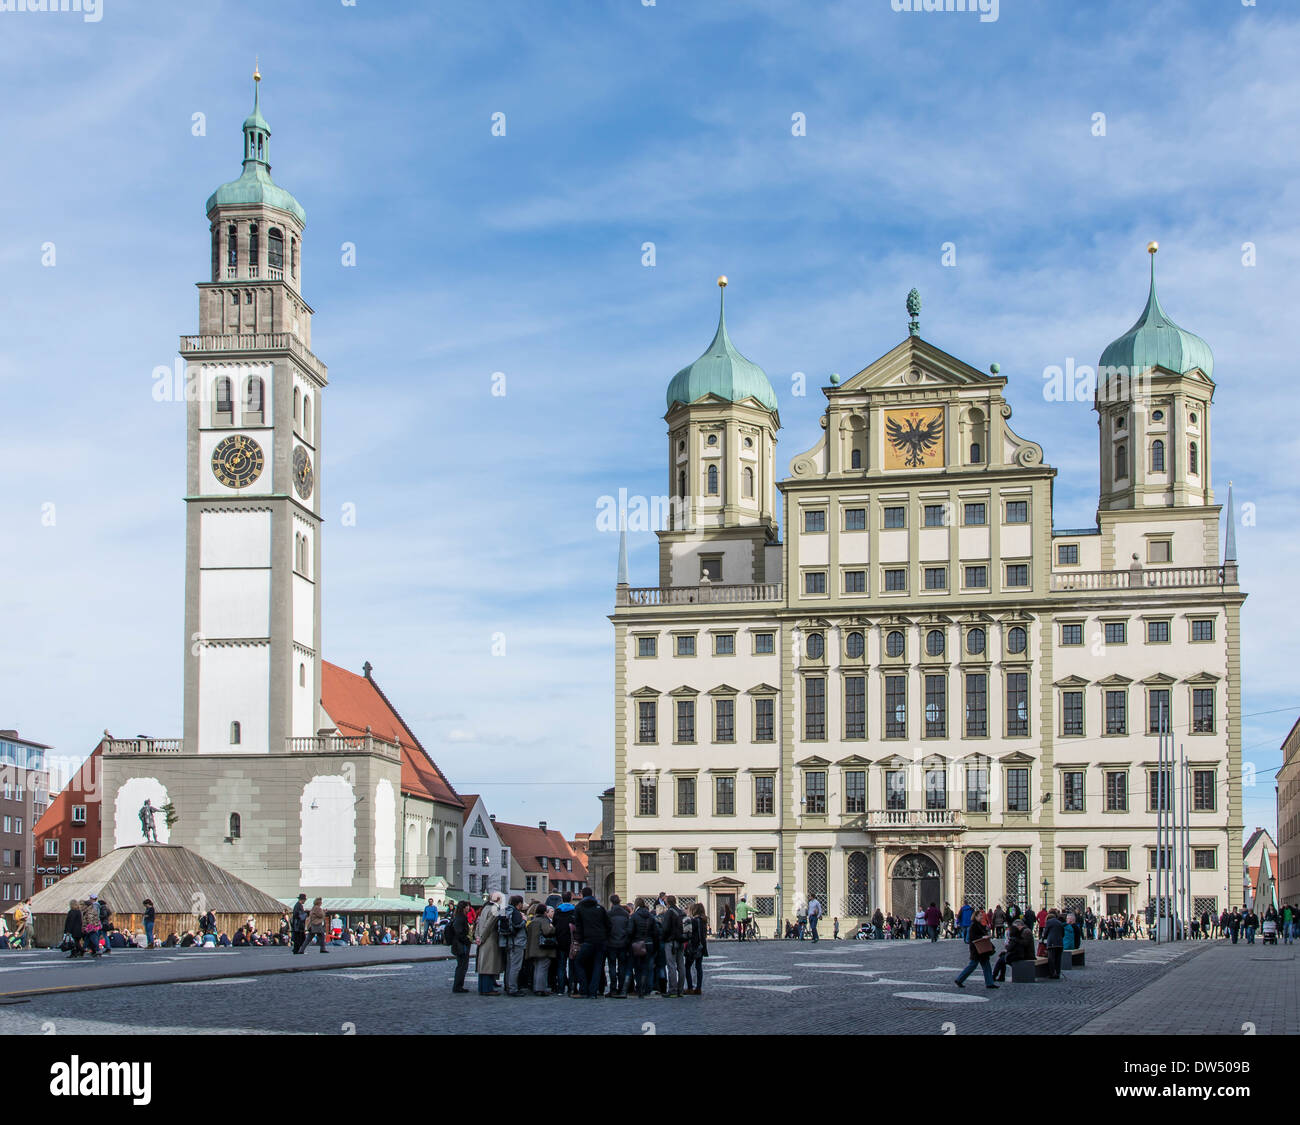 Tourists at a town square in Augsburg, Germany - Stock Image